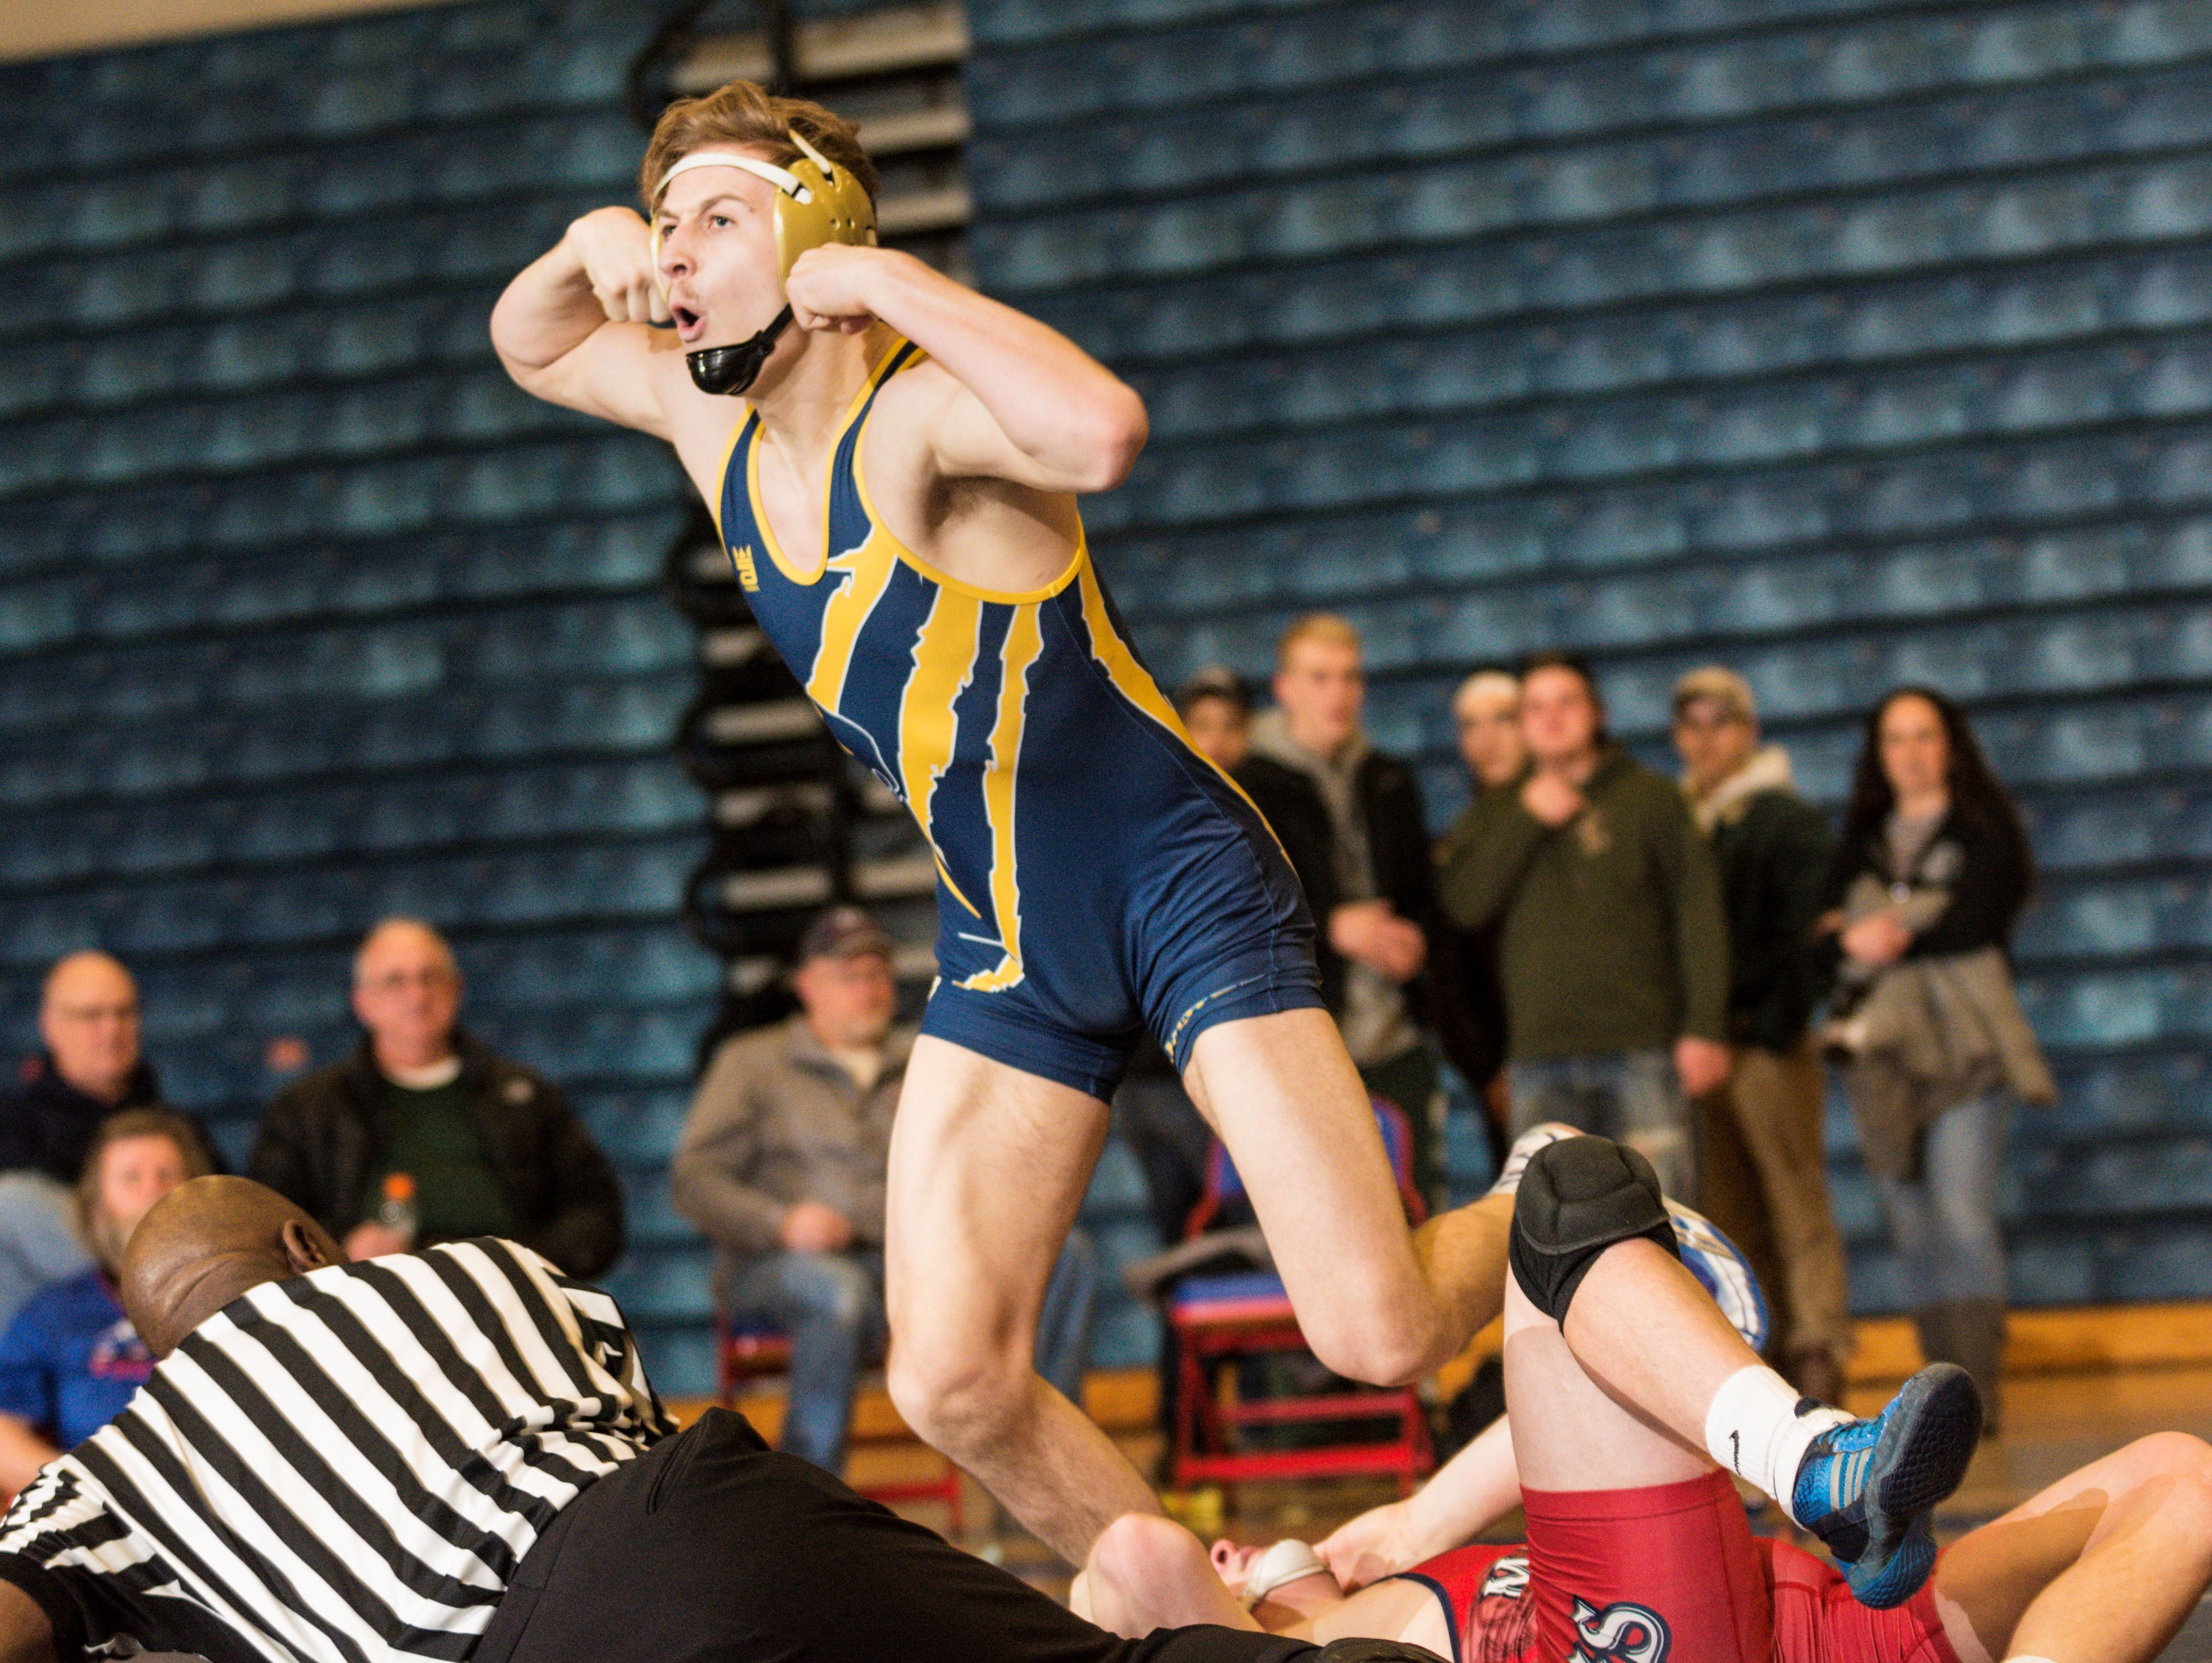 Sam York, top, of celebrates his pin of Jared Surato of Mason to end their 160lb. Division 2 regional final match Wednesday February 15, 2017 at Mason.